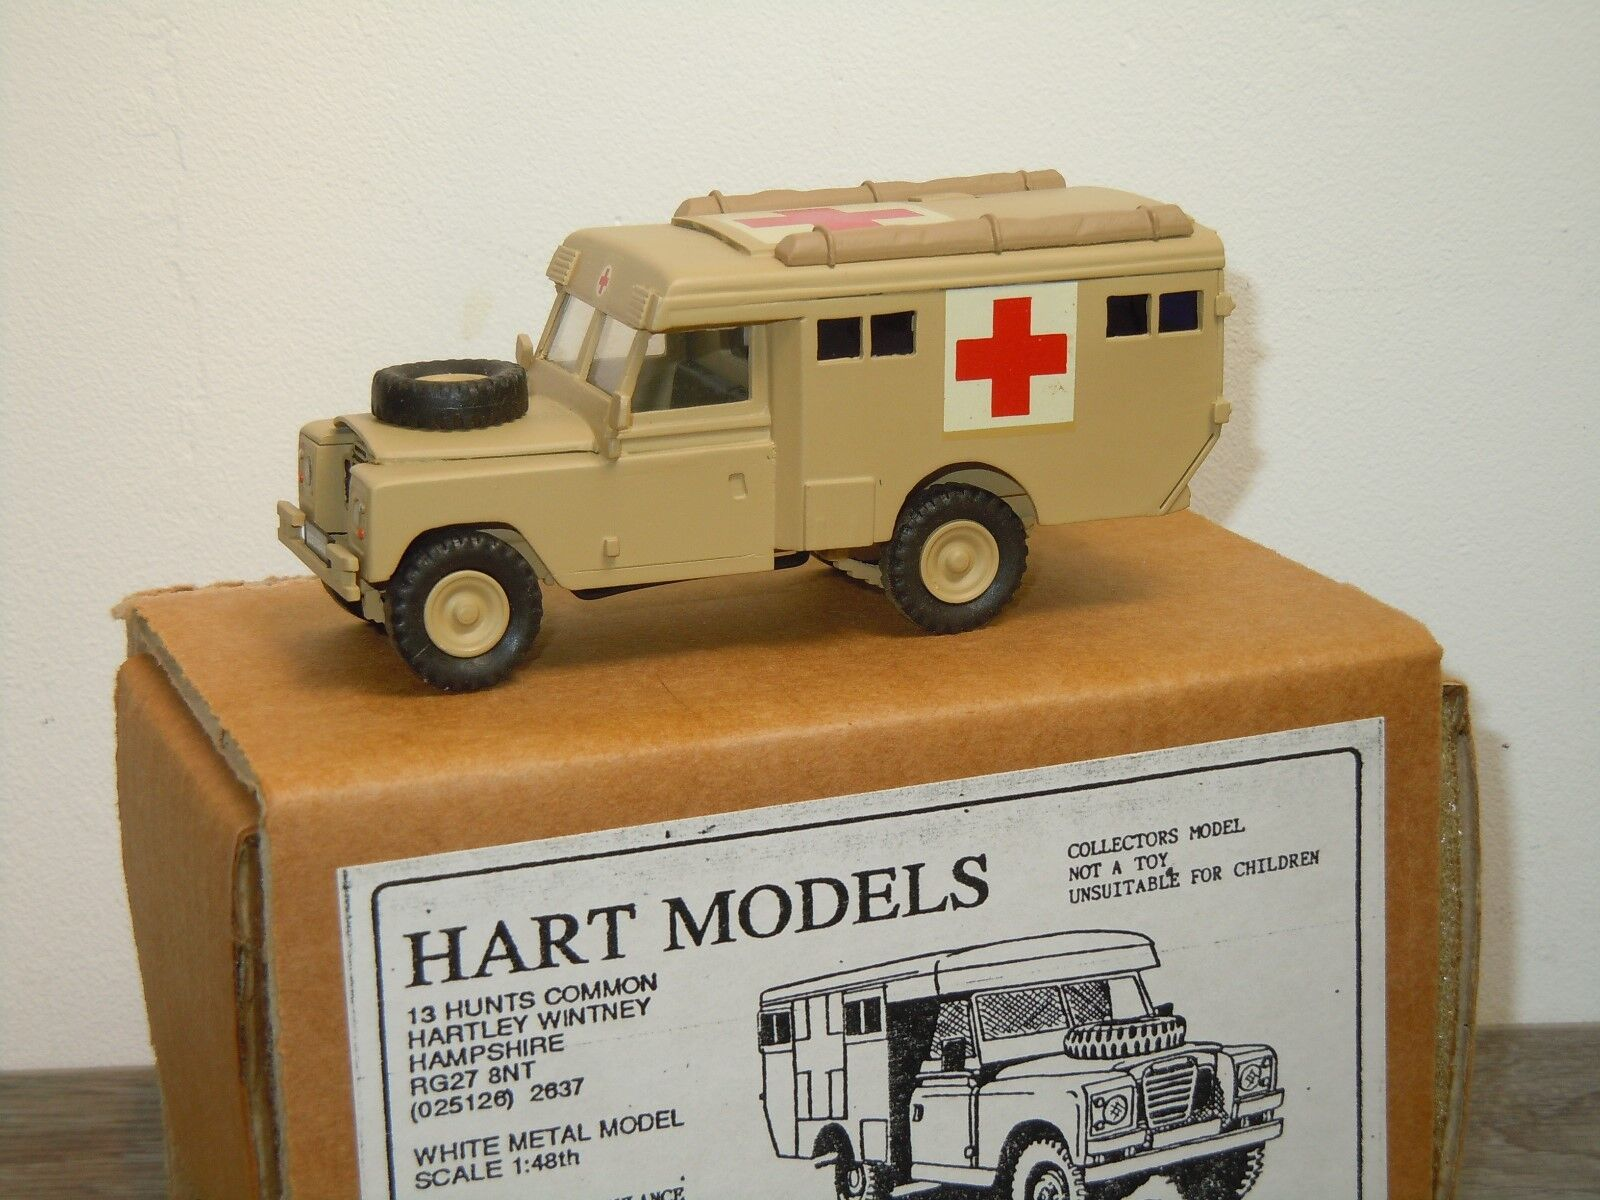 Land Rover Ambulance Series 111 HT26 - Hart Models England 1 48 in Box 34379